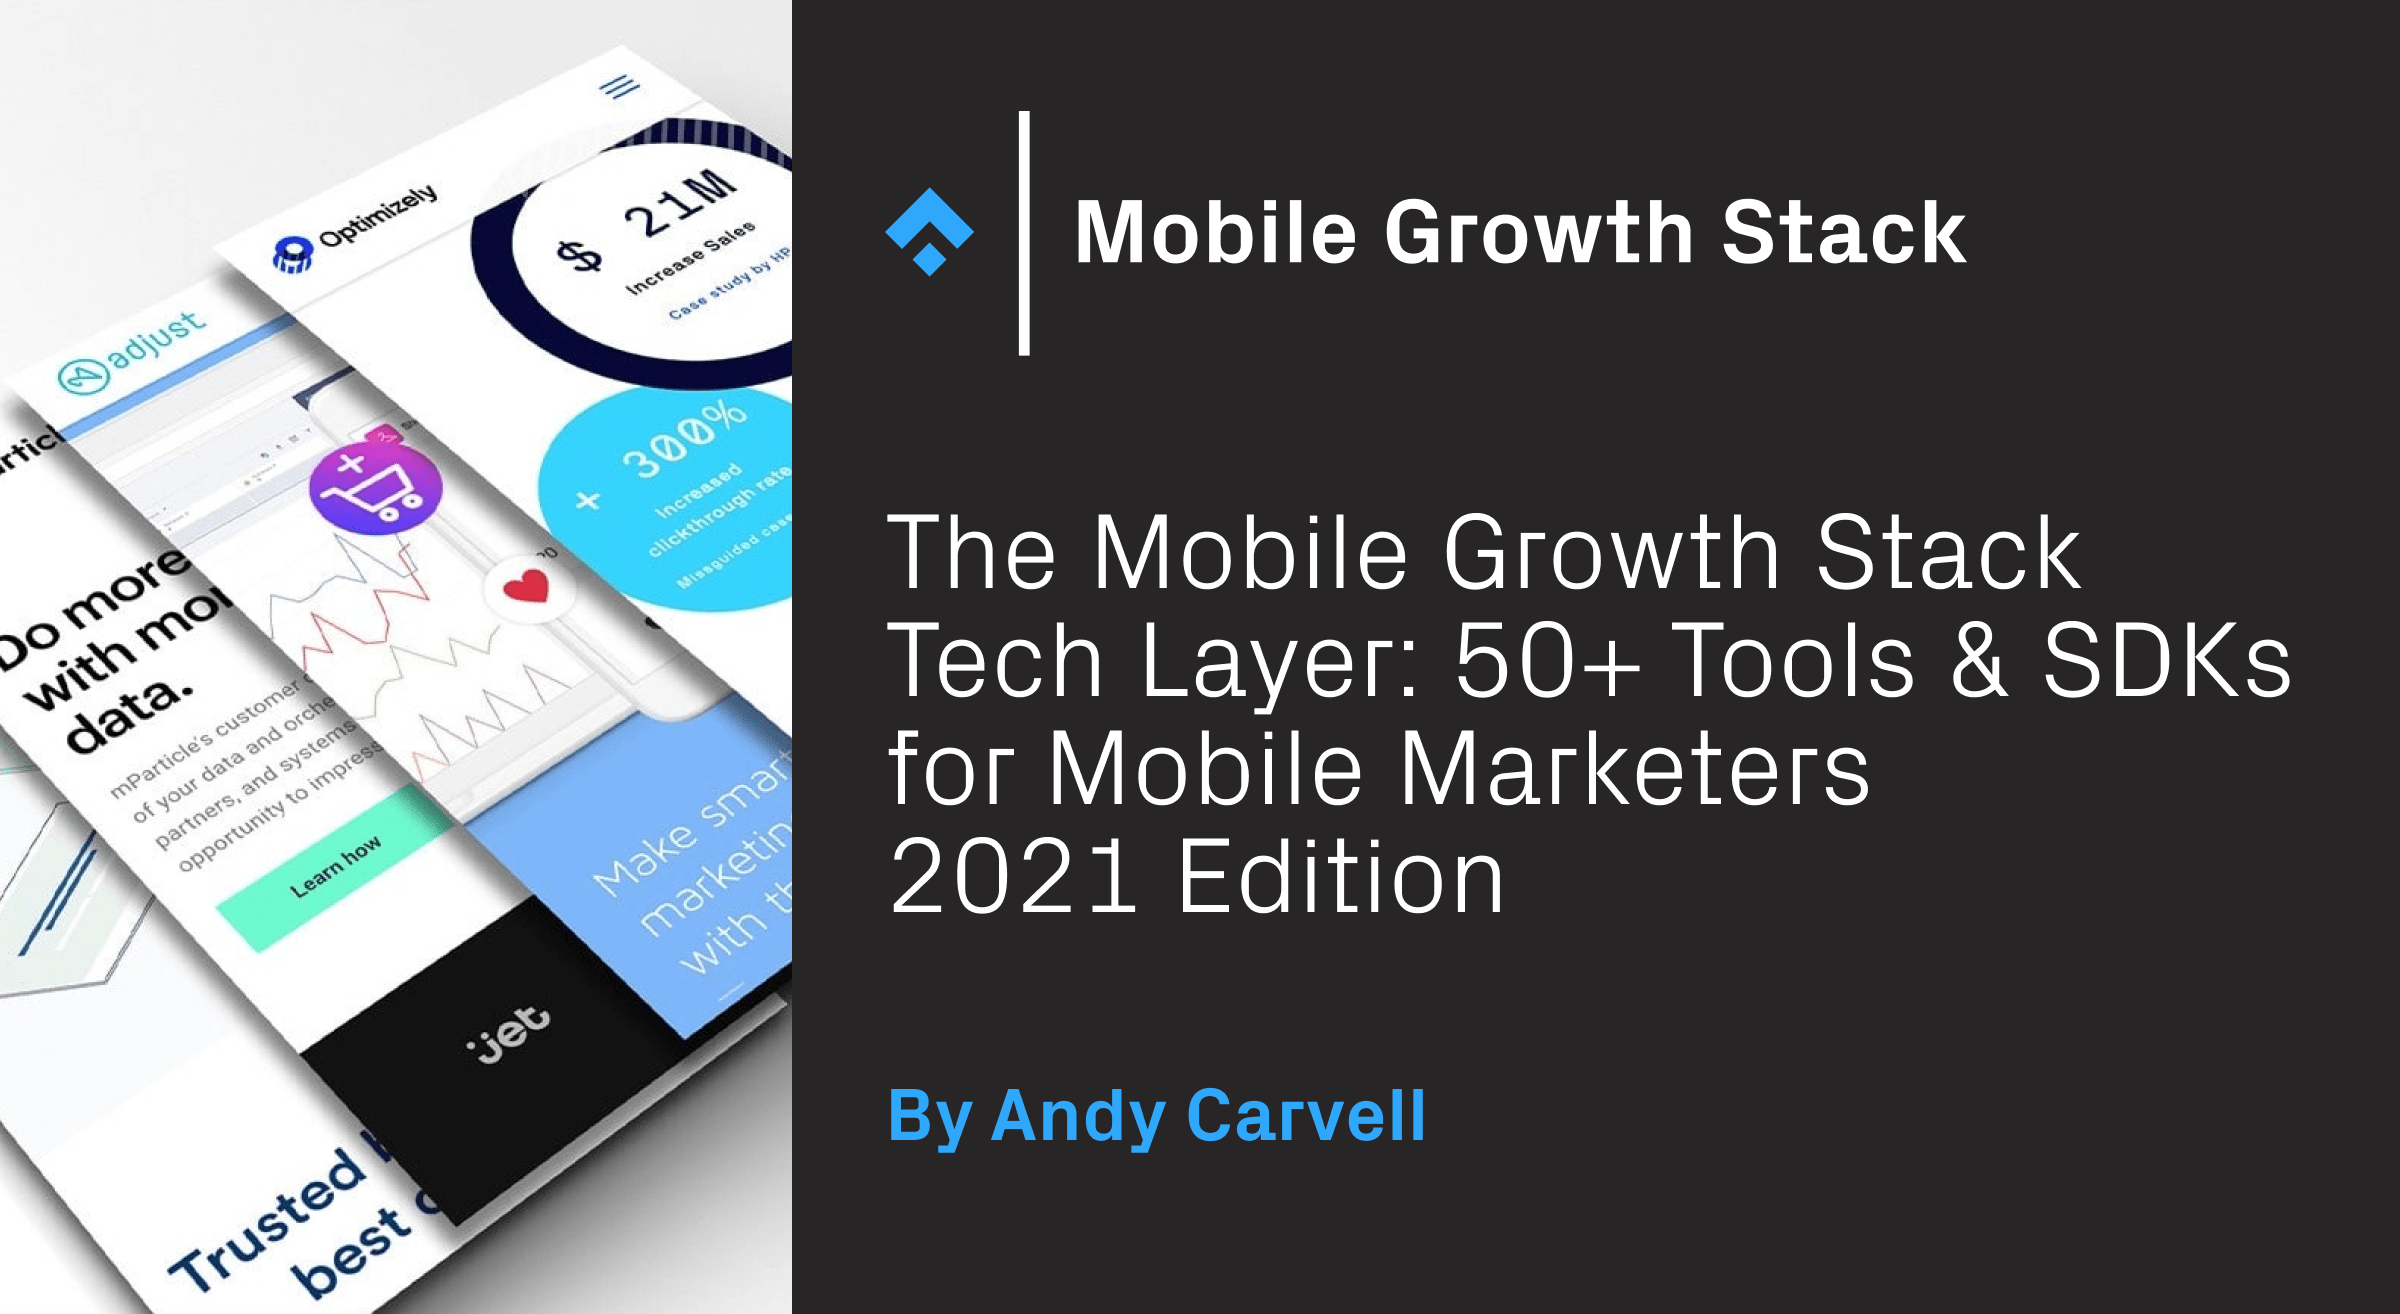 Mobile Growth Stack Tech Layer